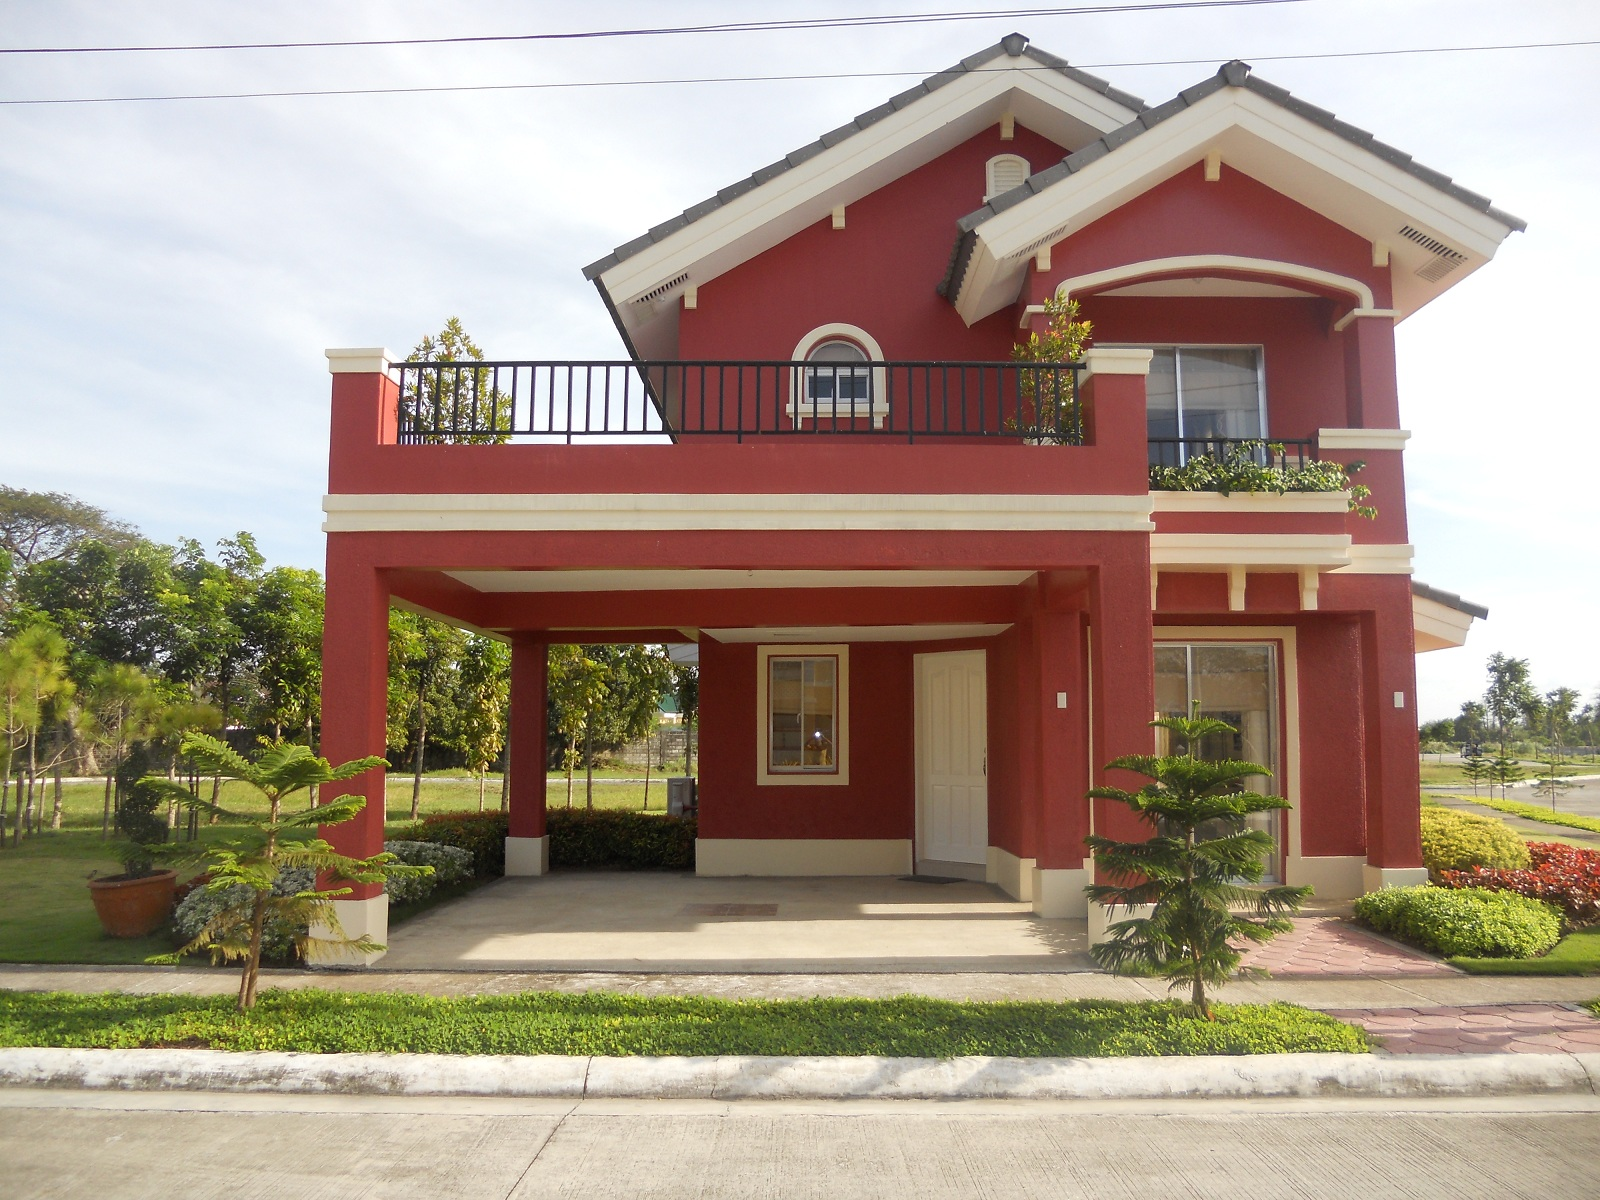 Savannah glades iloilo within savannah iloilo by camella for The model house